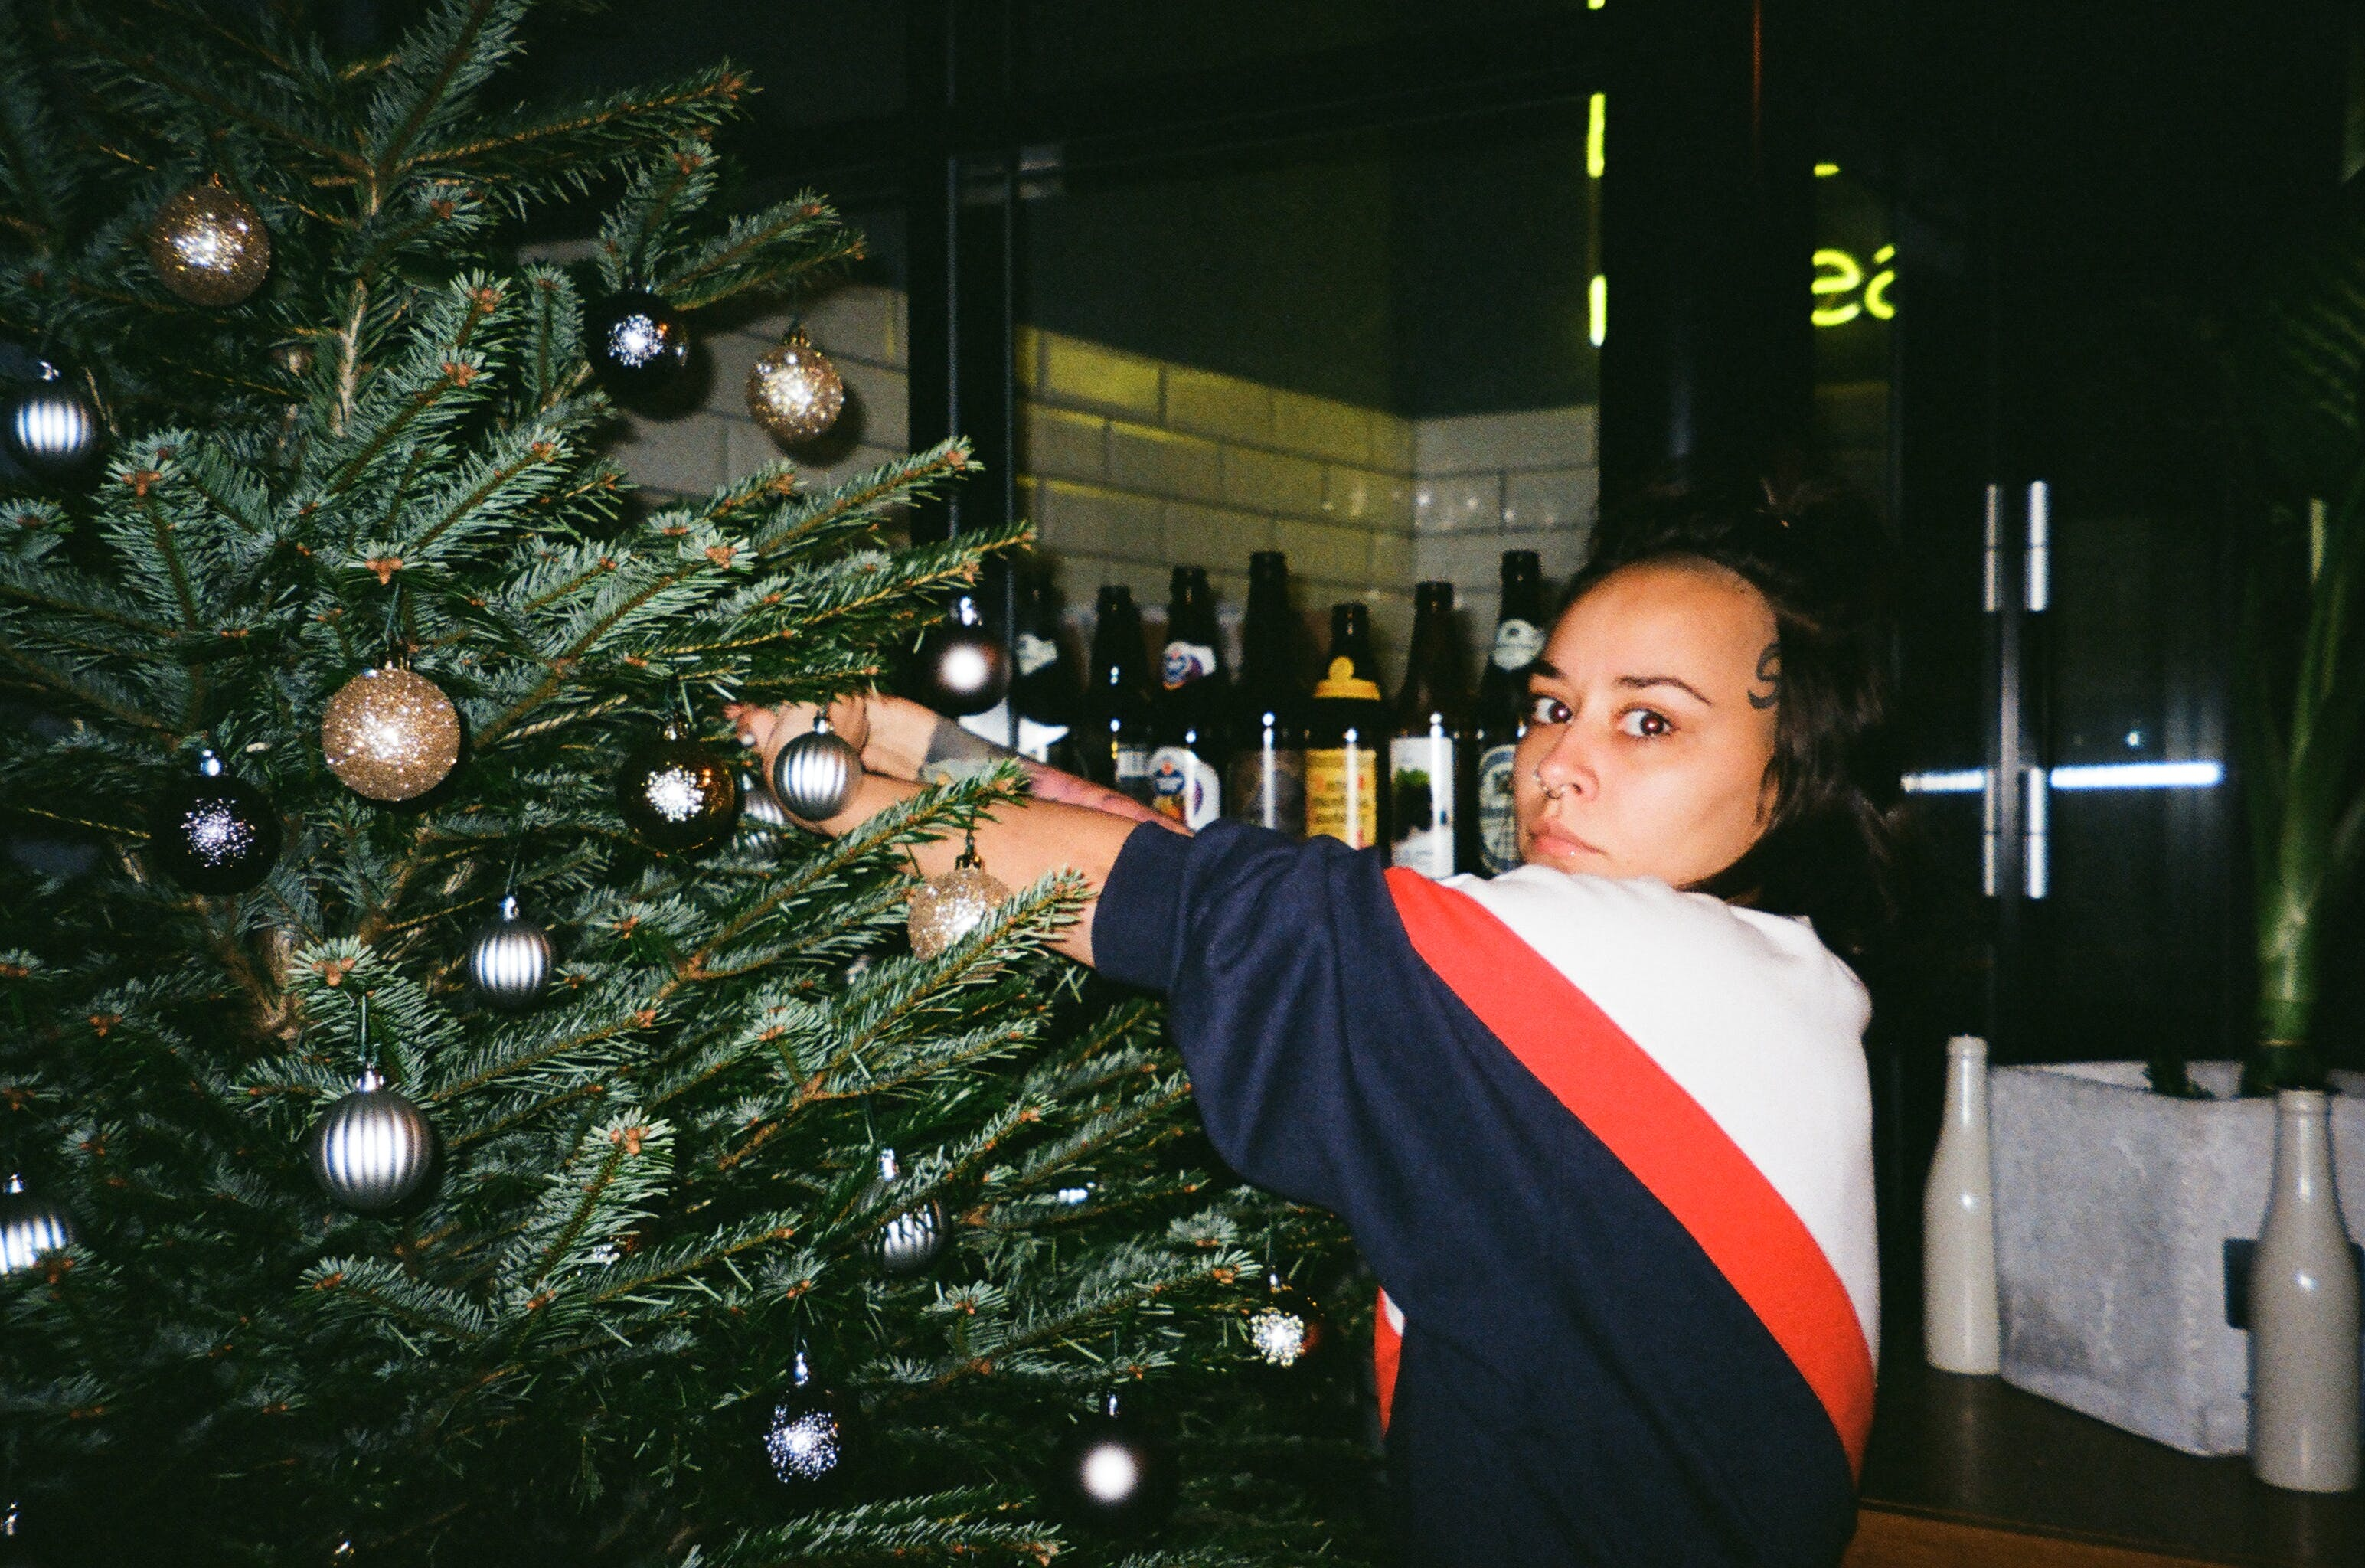 Woman Wearing Sweater Holding Christmas Tree With Baubles Inside the Room